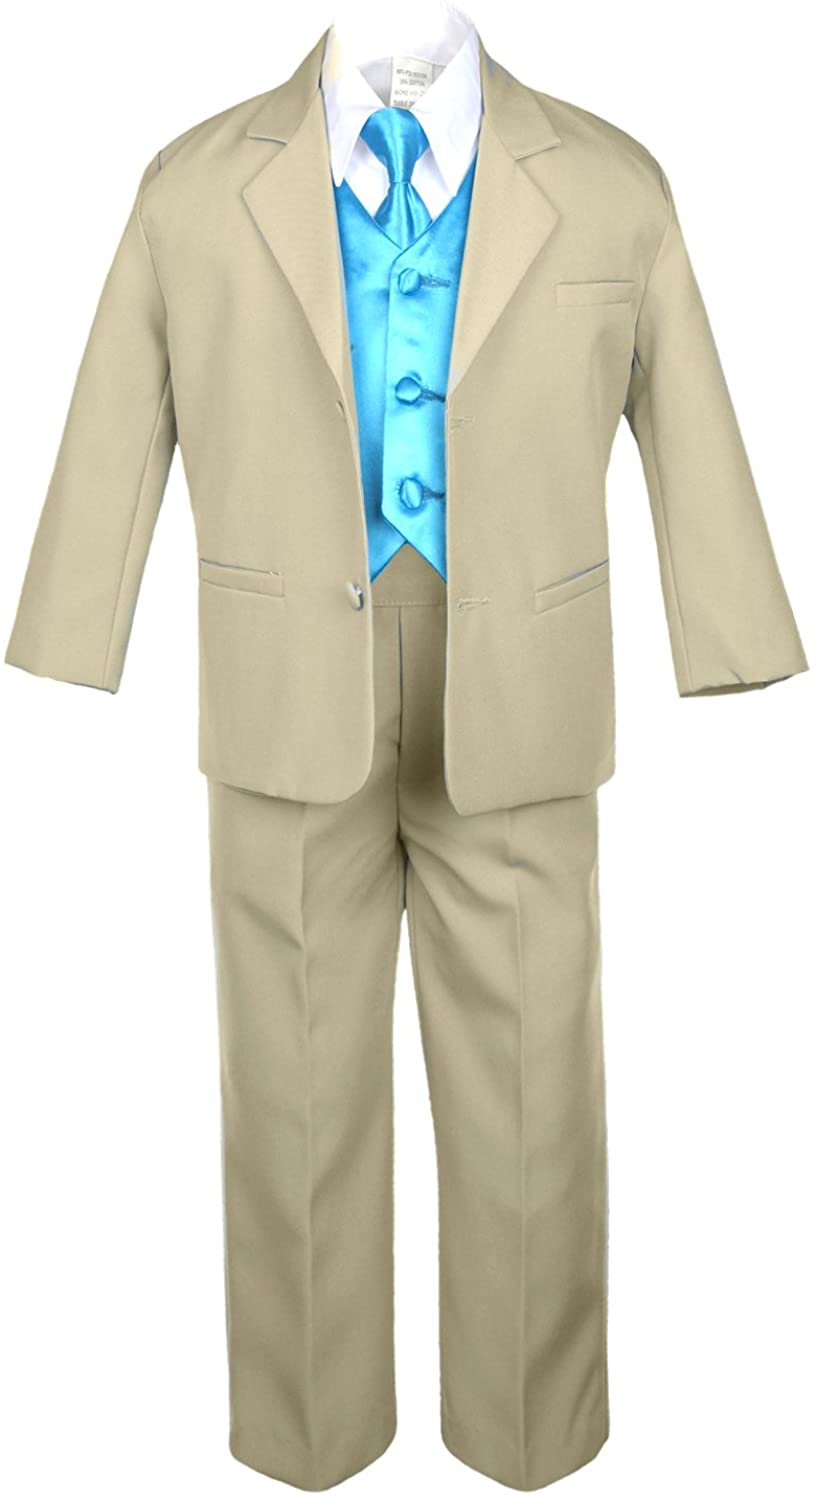 Unotux 7pc Boys Khaki Suits with Satin Turquoise Blue Vest Set from Baby to Teen